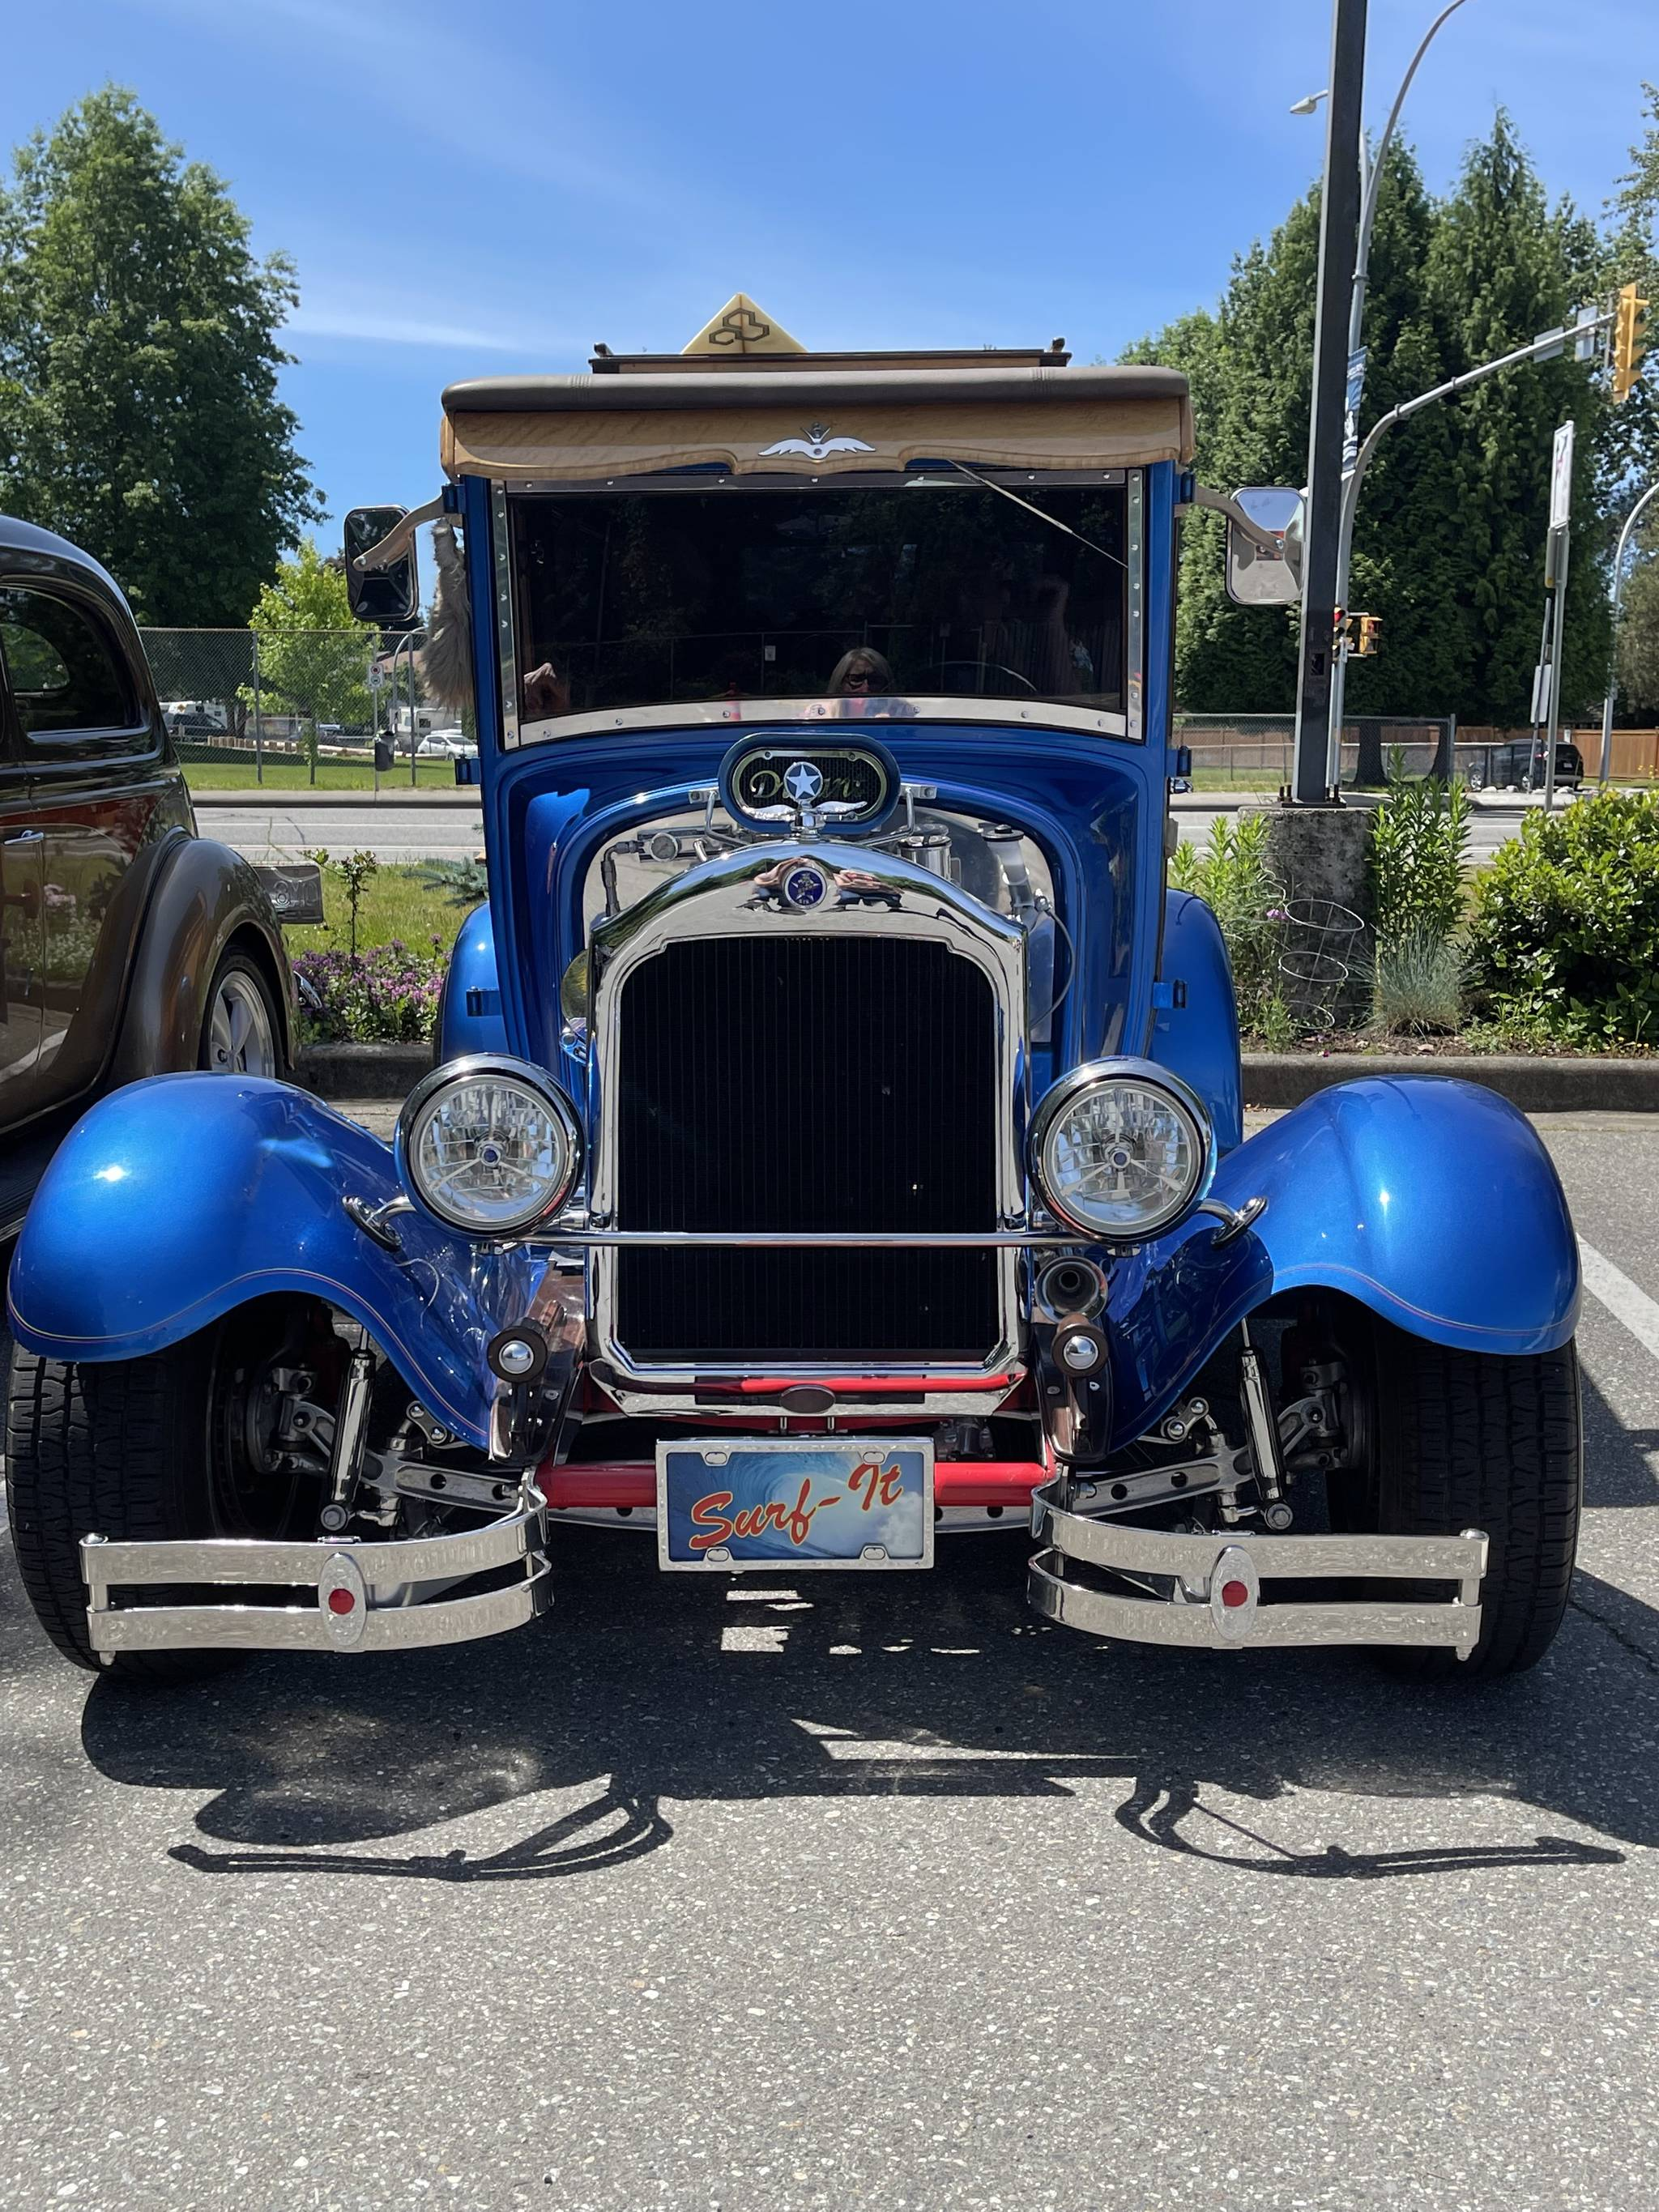 Langley Senior Resources Society hosted a Father's Day drive-thru on June 20, 2021. They invited seniors to bring out their vintage cars. (LSRS/Special to Langley Advance Times)